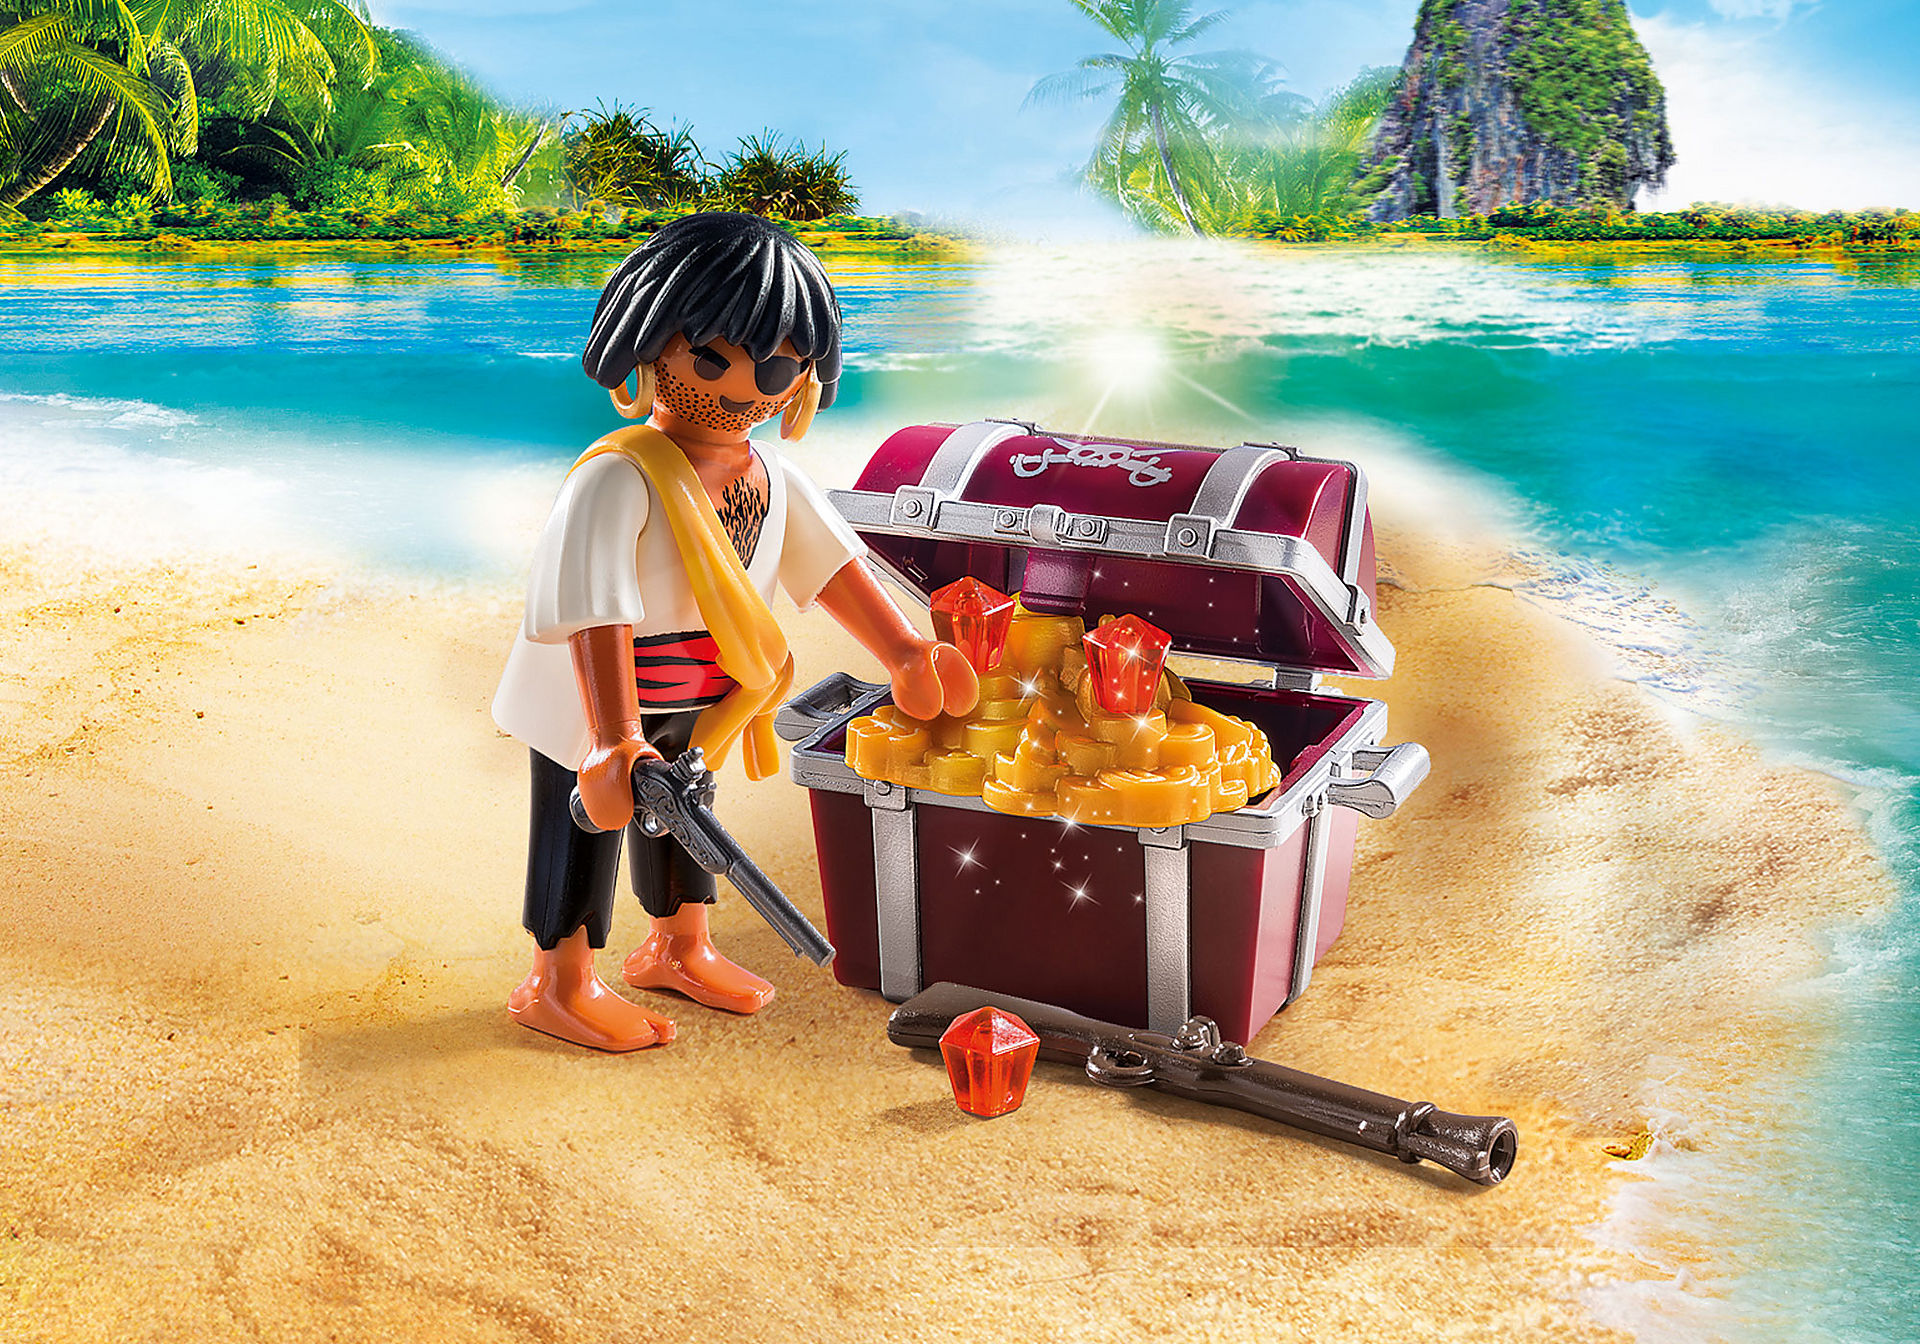 http://media.playmobil.com/i/playmobil/9358_product_detail/Piraat met schatkist